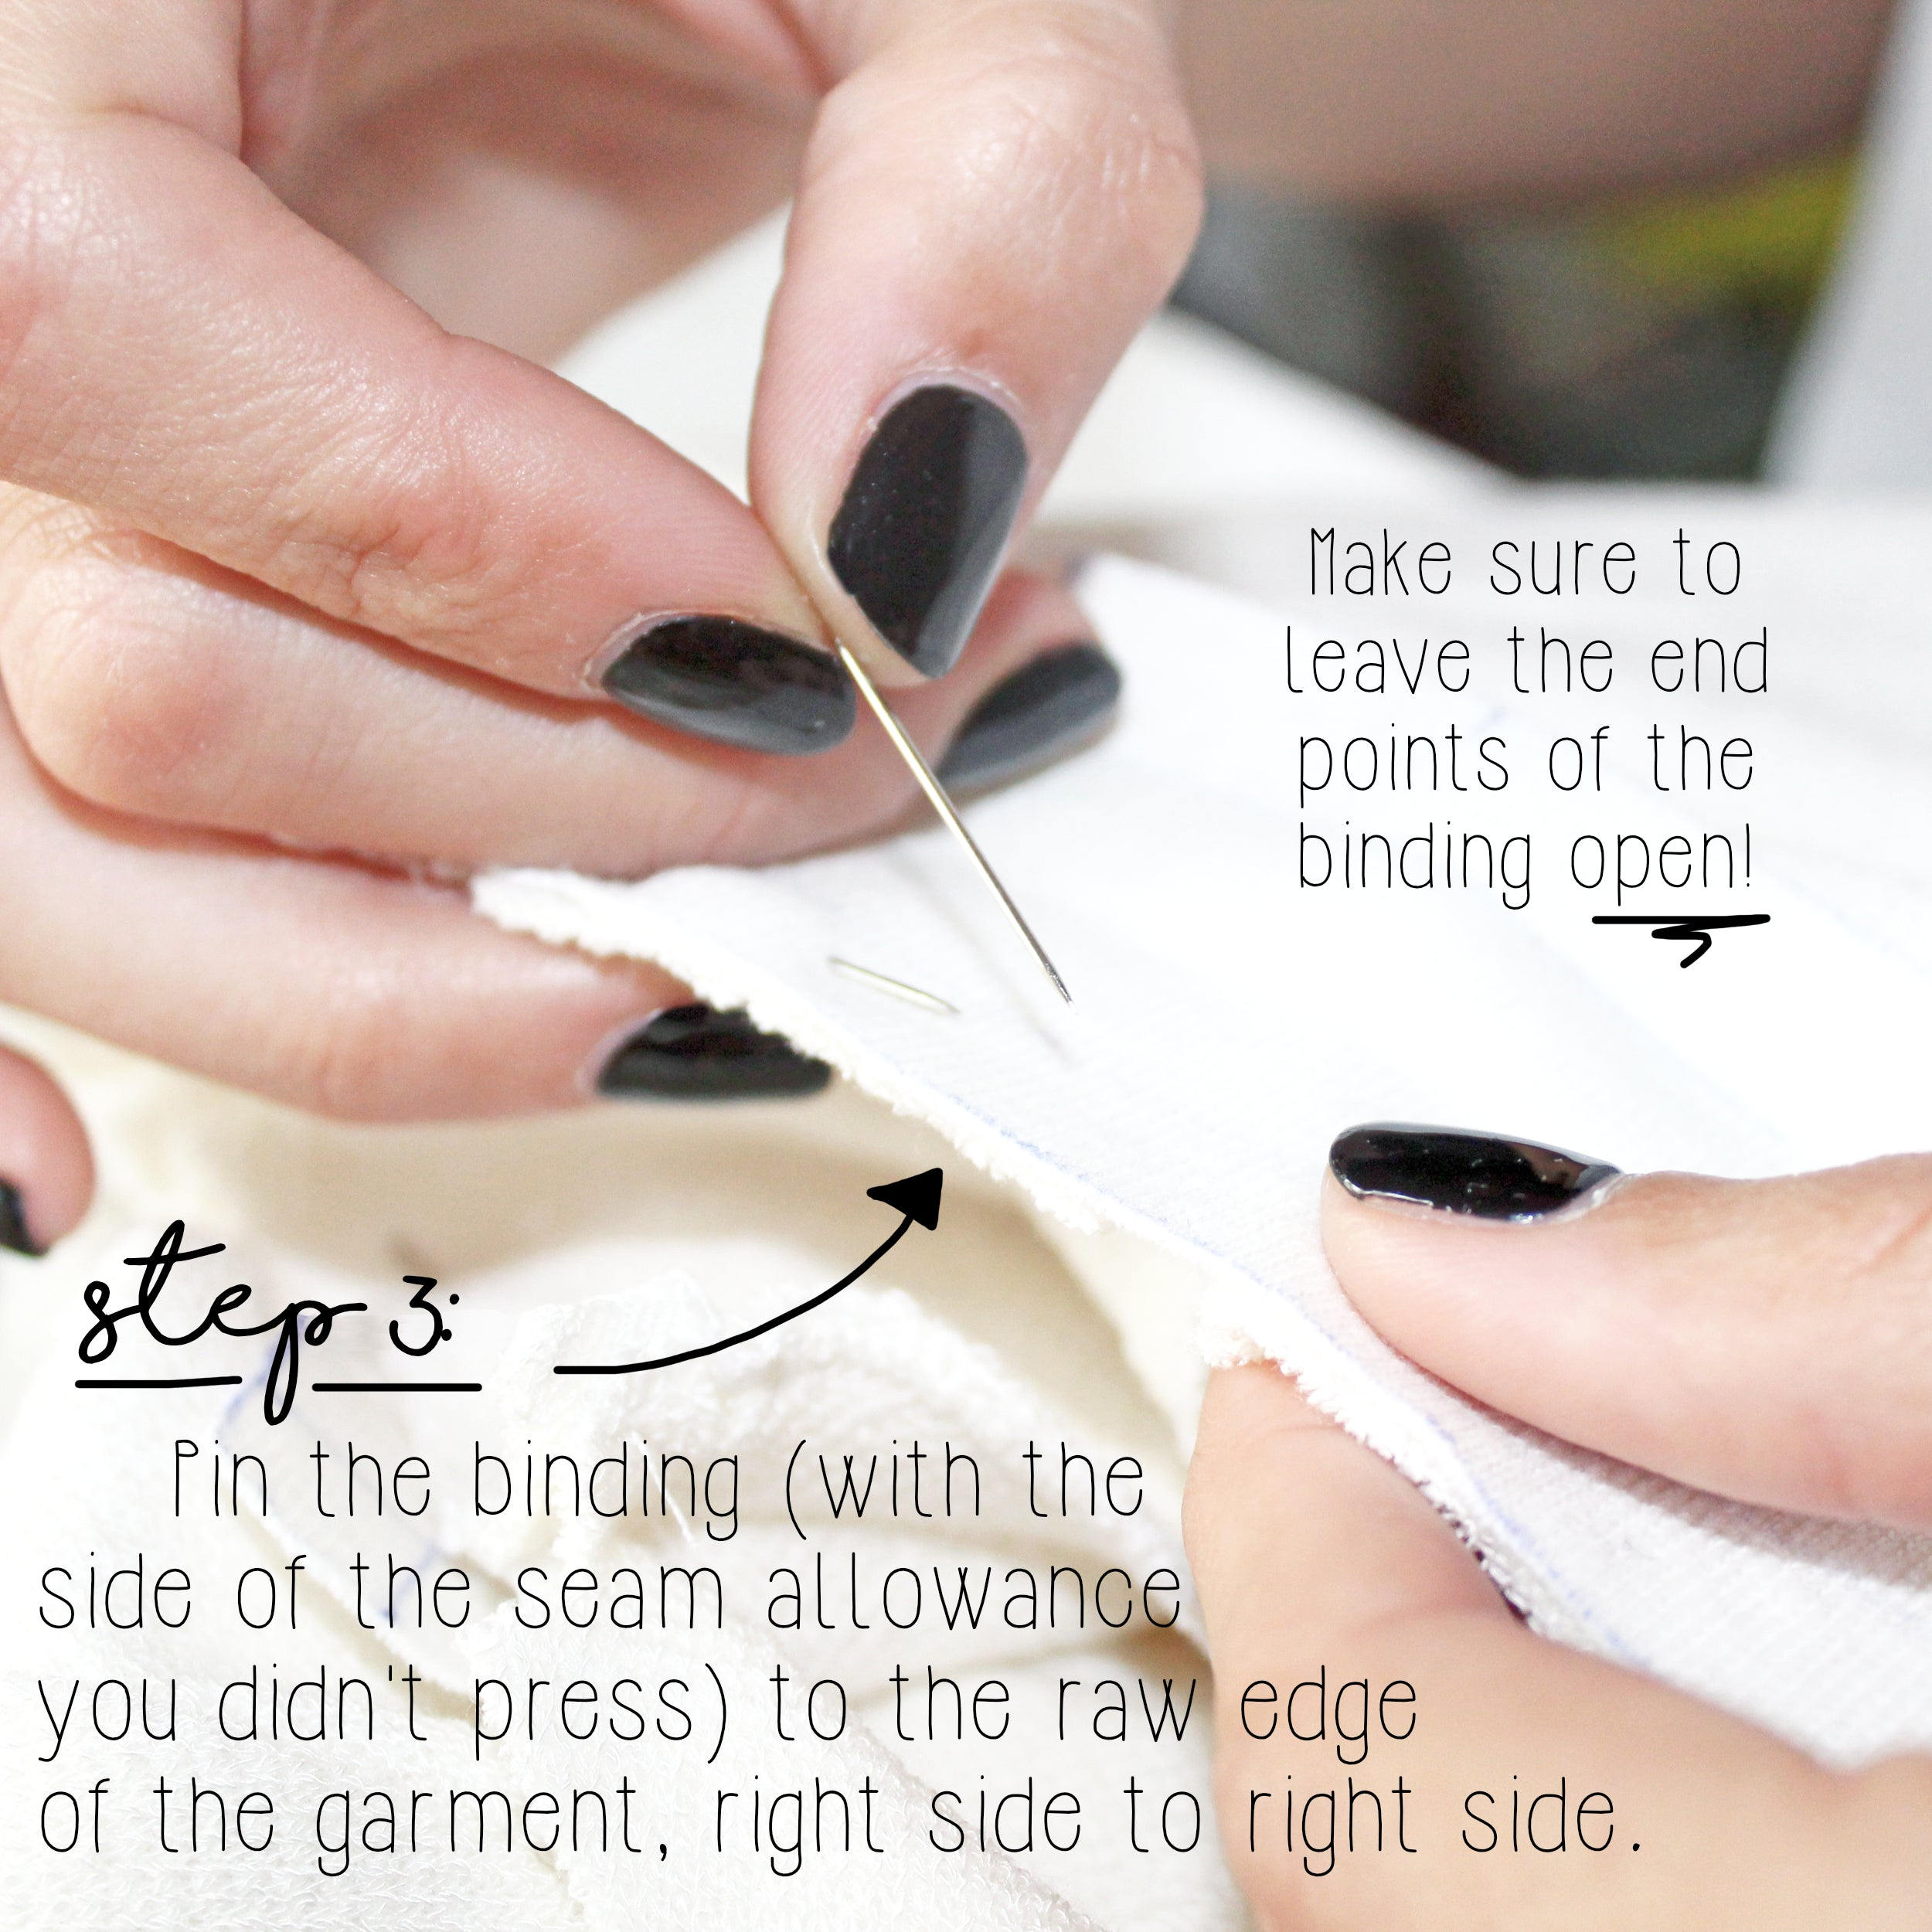 How To Sew A Knit Seam Binding Sewing Tutorial: Step 3